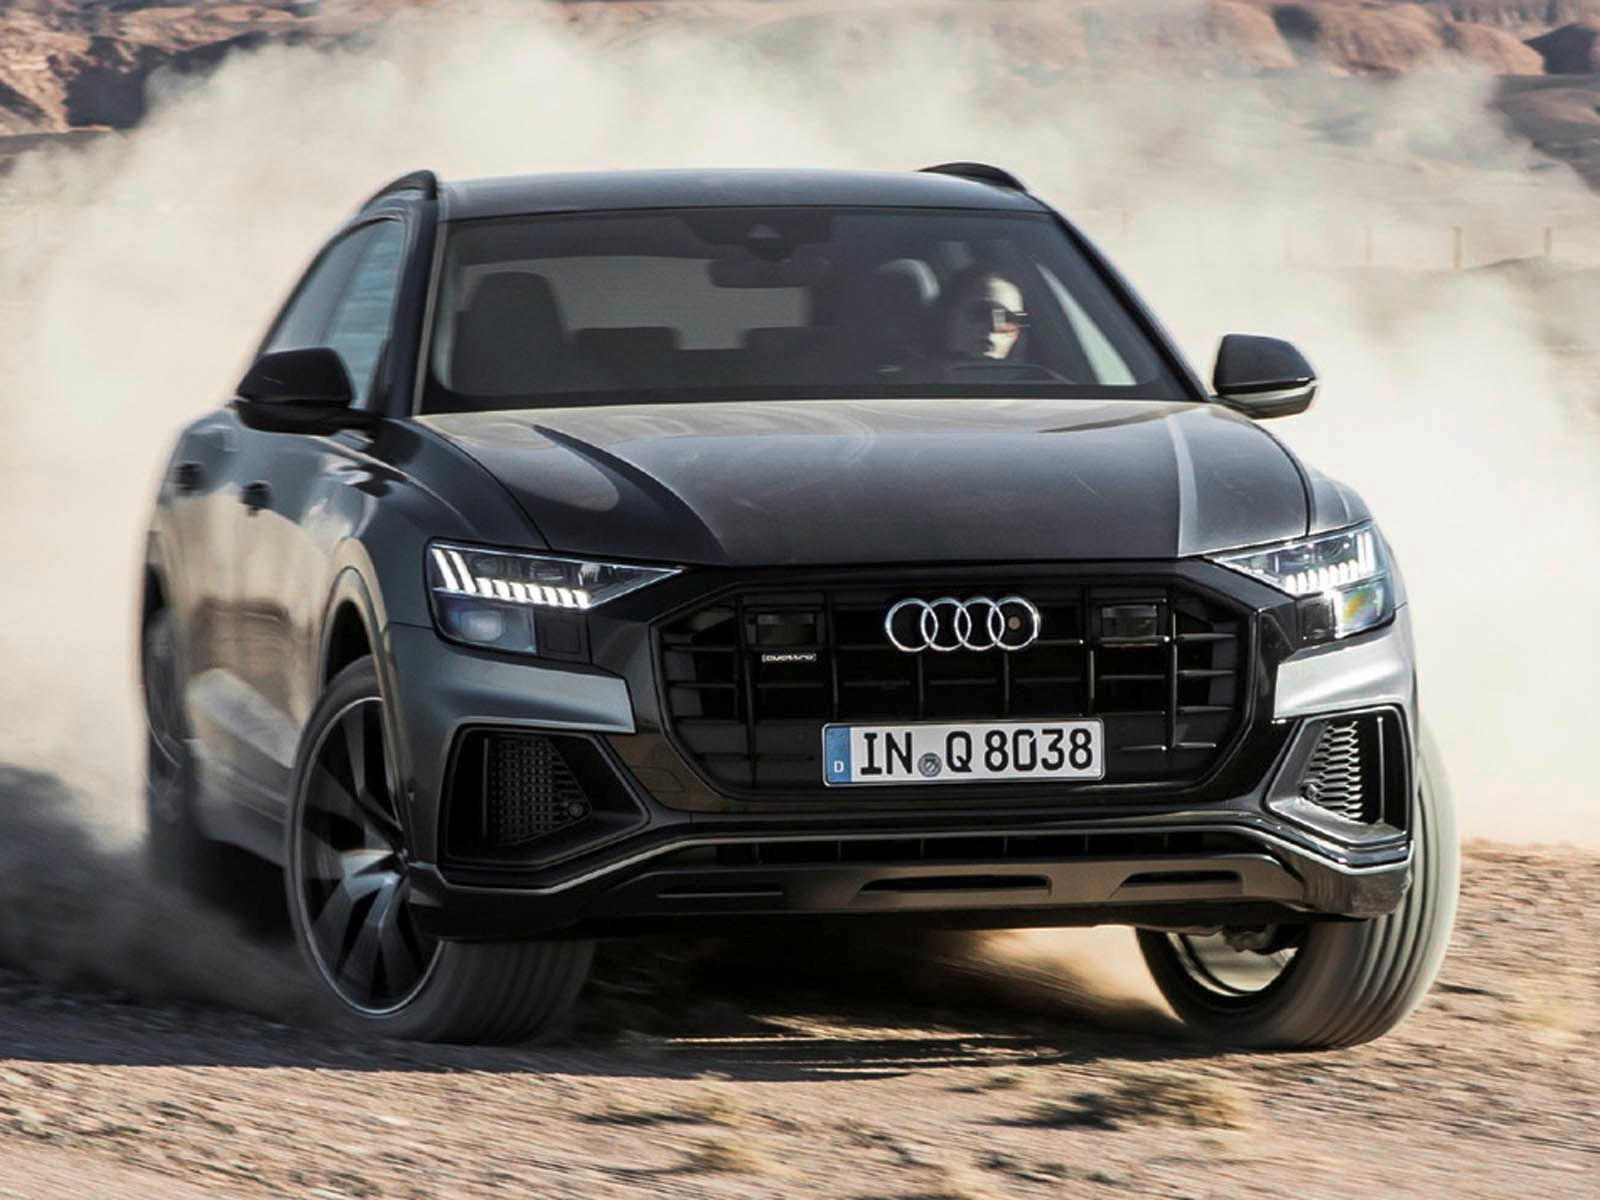 2019 Audi Q8 Should Start Around $73,000